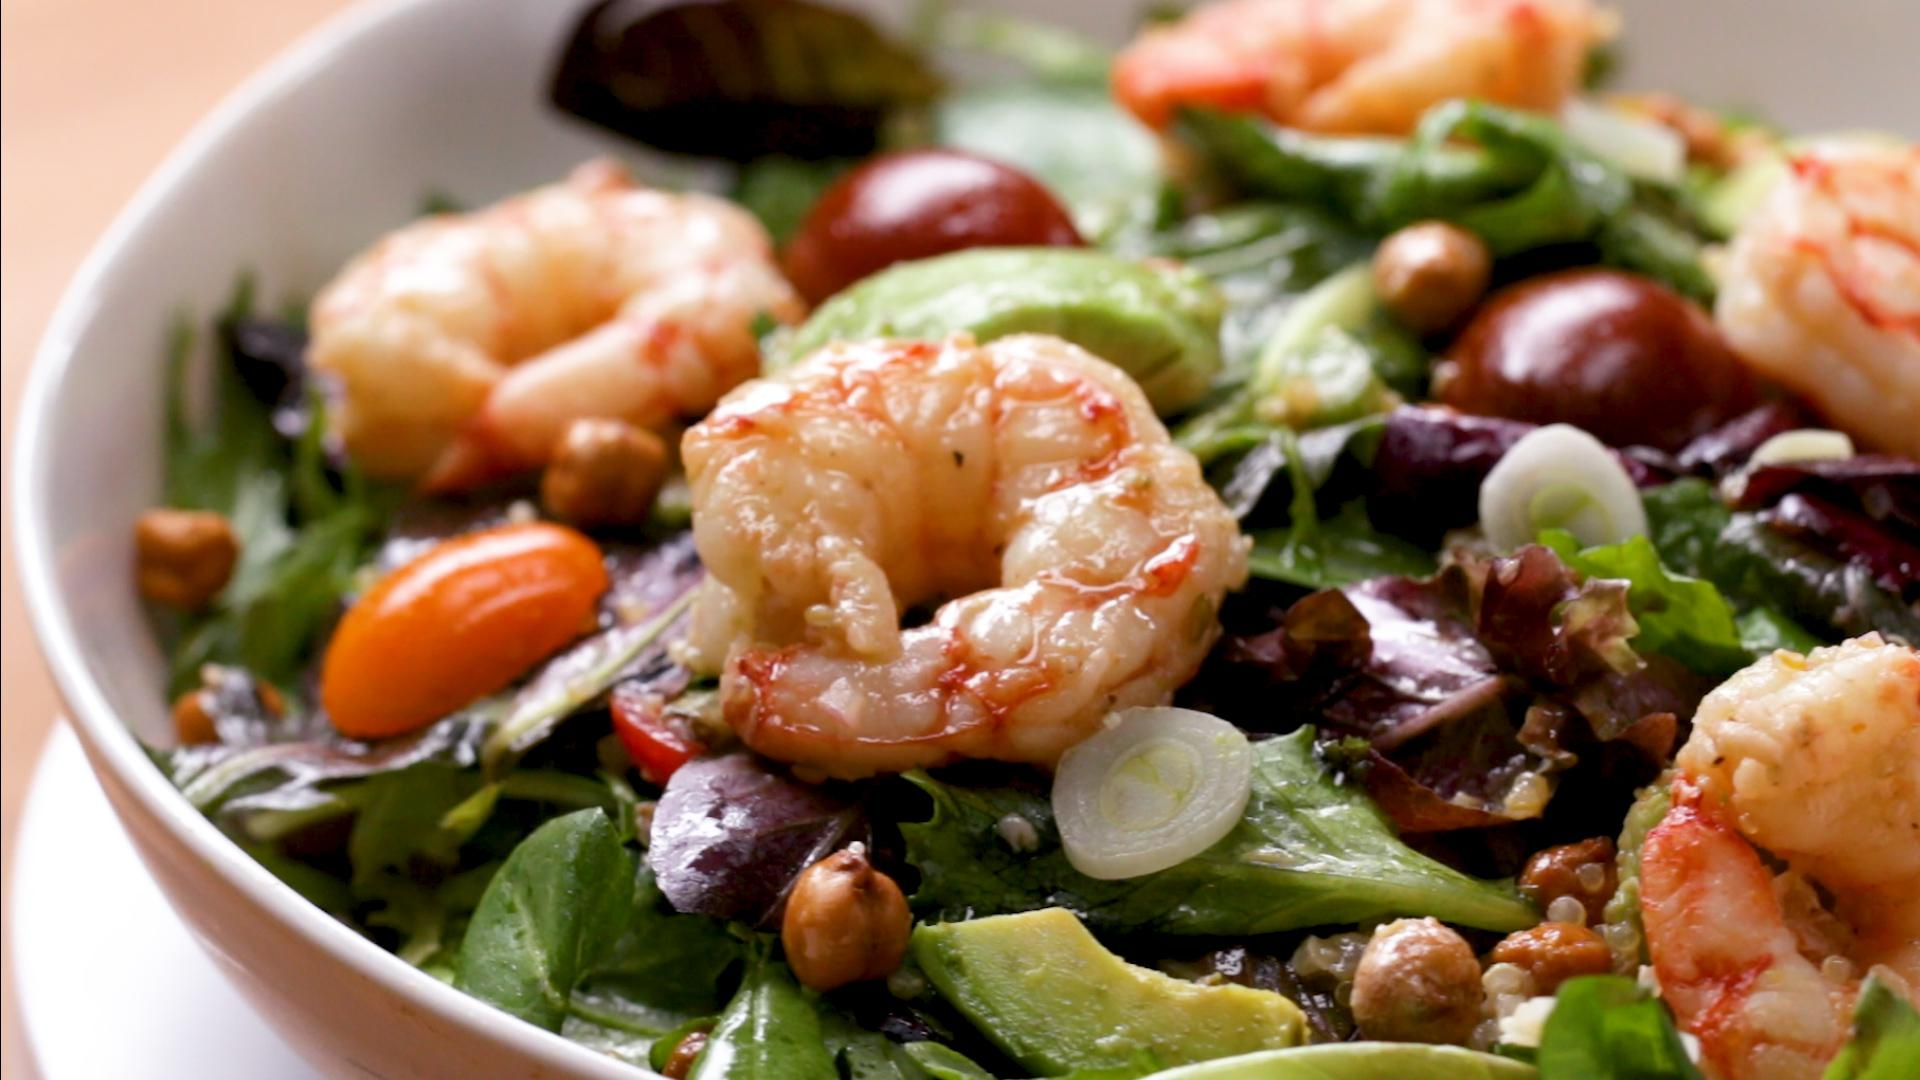 seared shrimp and avocado salad recipe